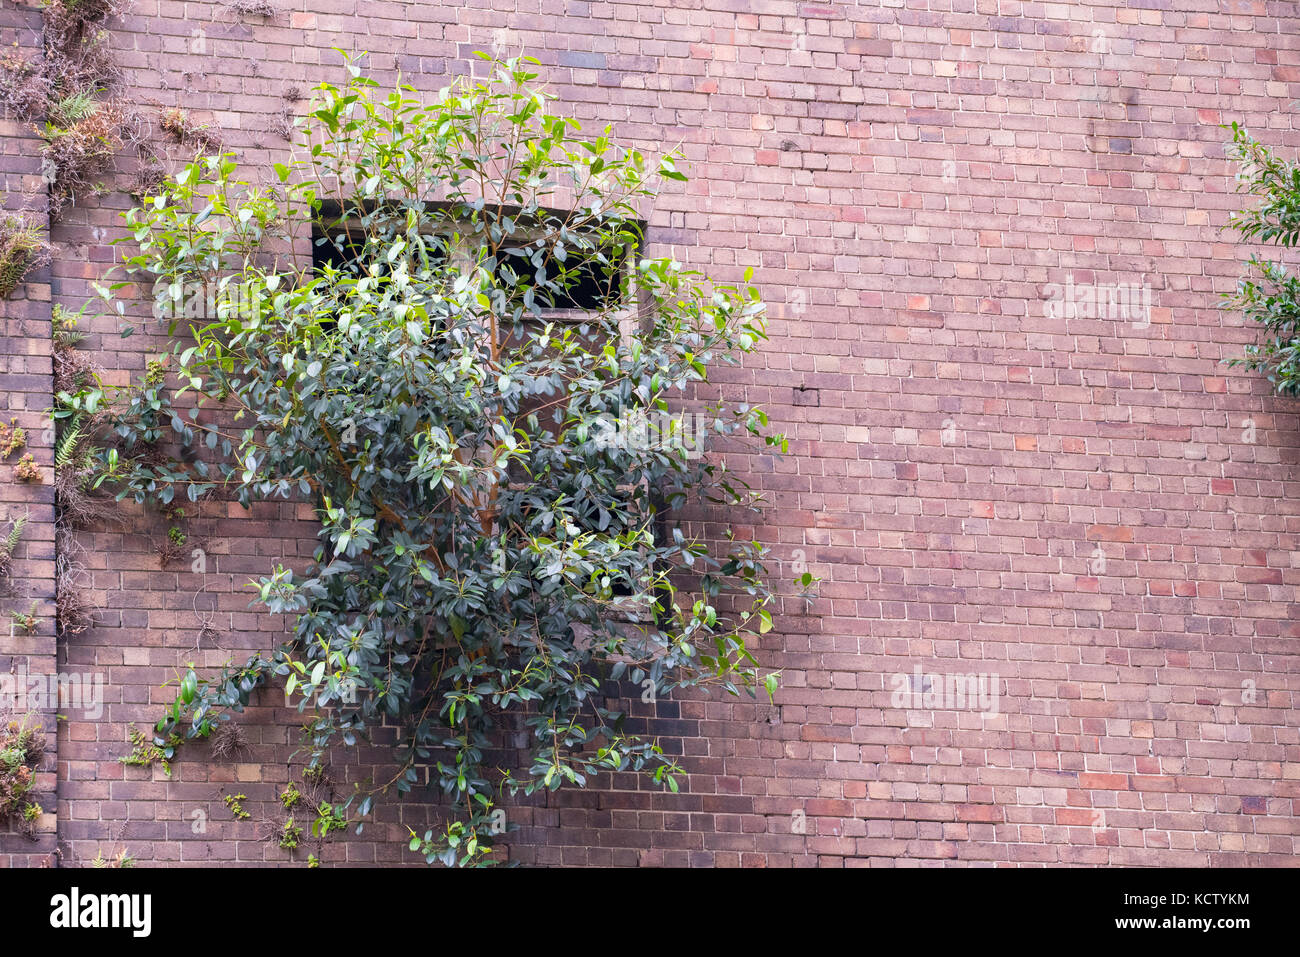 A shrub growing out of a window and brick wall from an abandoned factory in an older part of inner Sydney - Stock Image